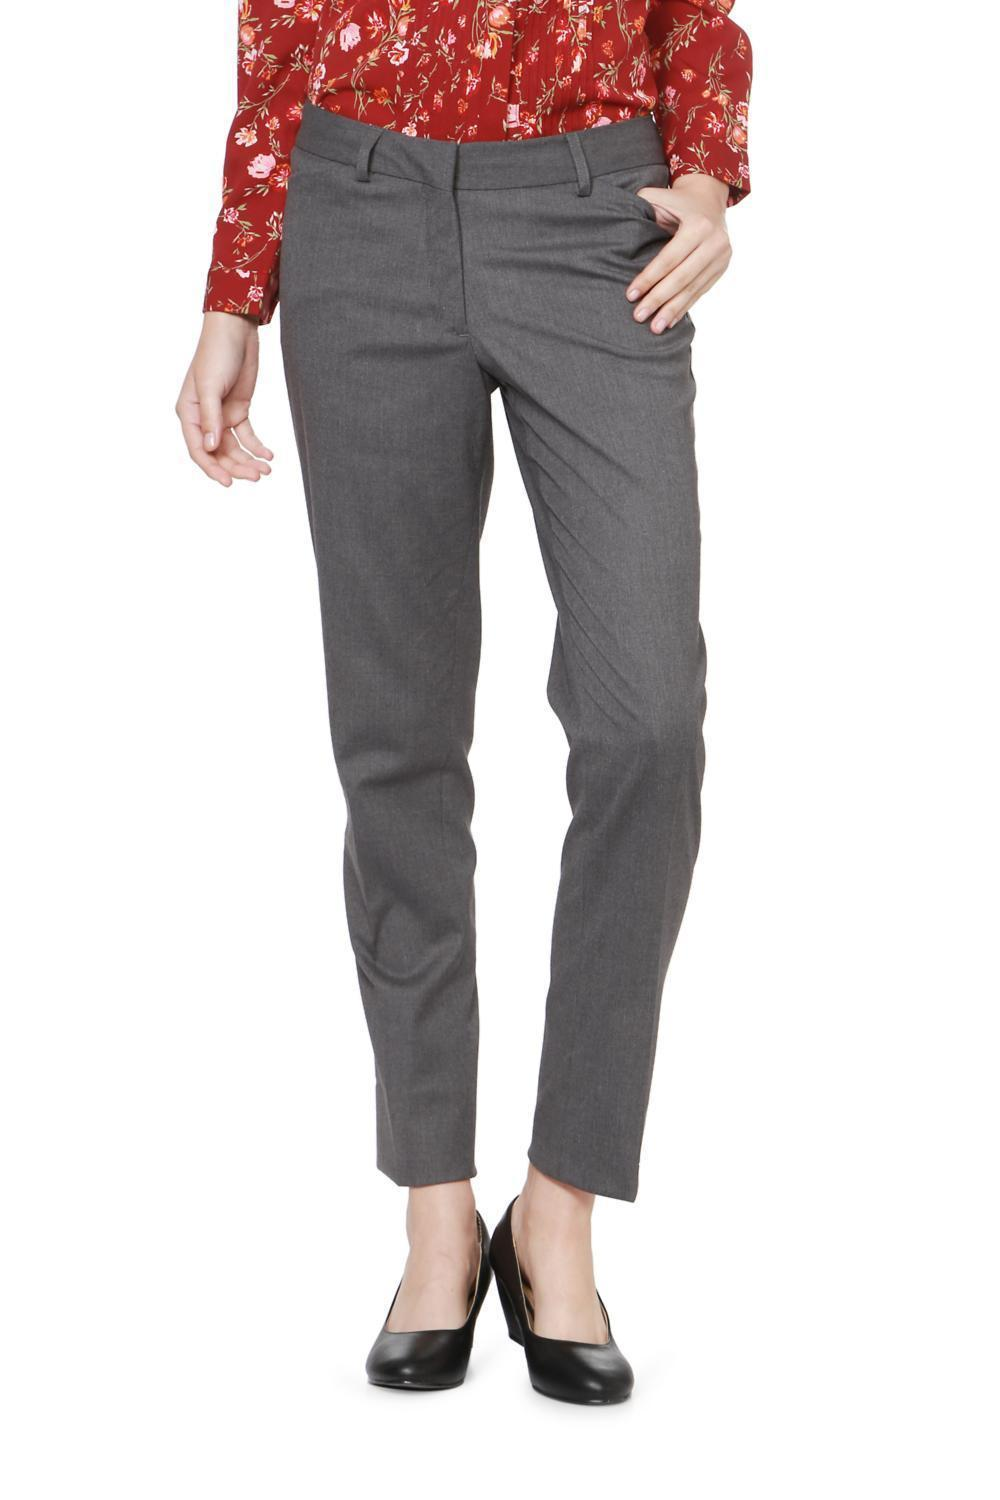 234e01571a0e1f Solly Trousers & Leggings, Allen Solly Grey Trousers for Women at Allensolly .com